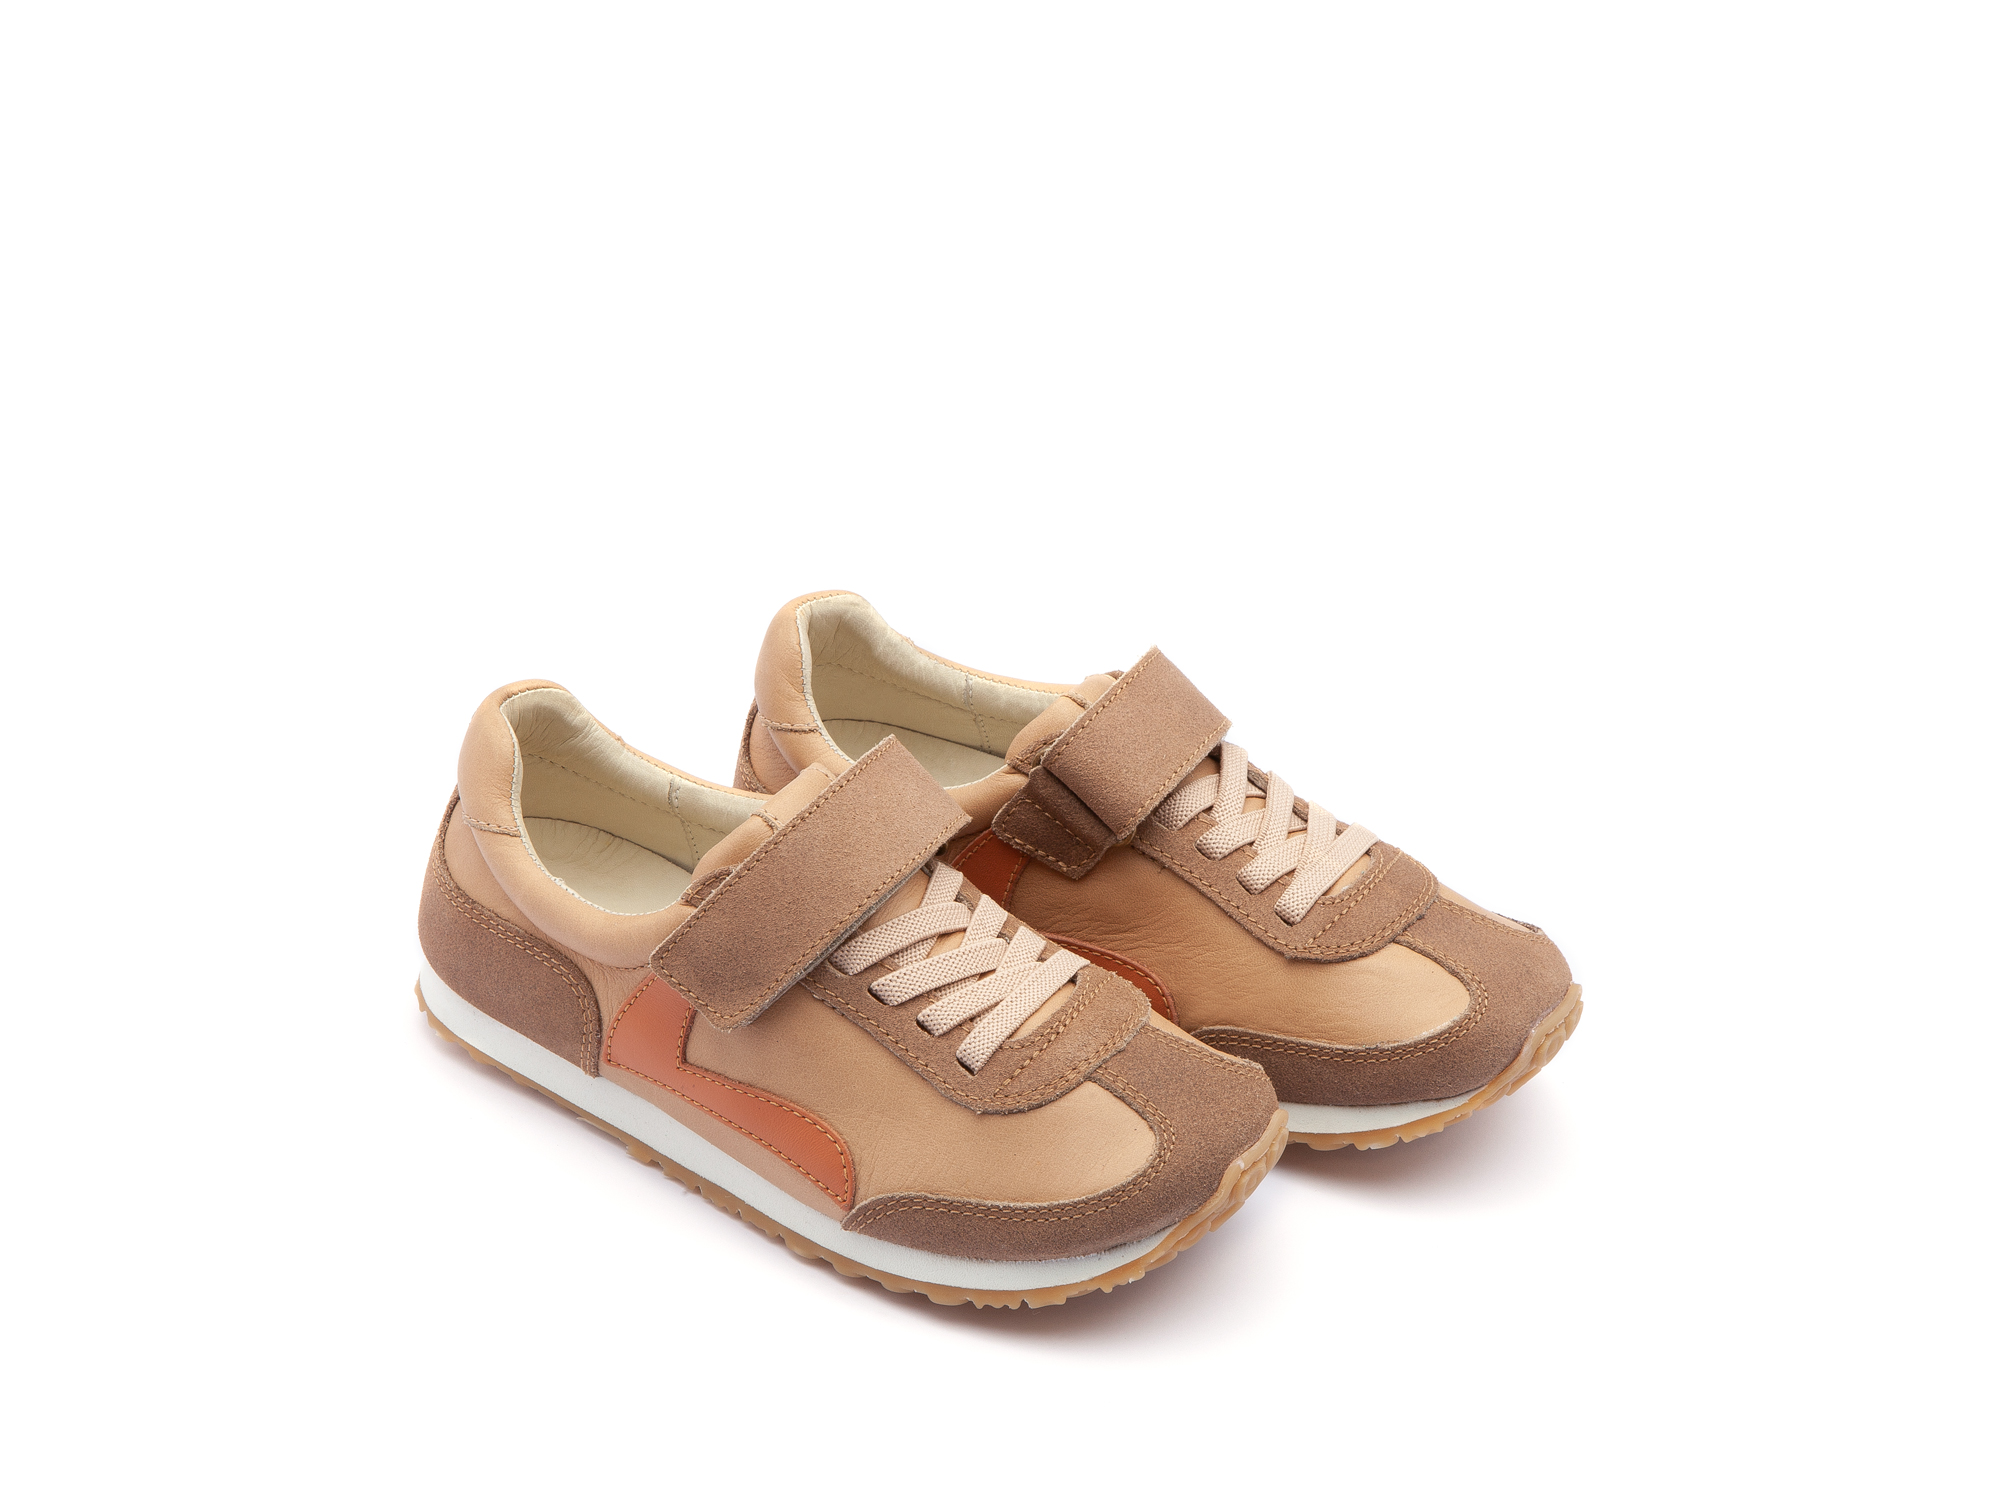 Tênis Start Sand/ Dry Tan Suede Junior 4 à 8 anos - 0